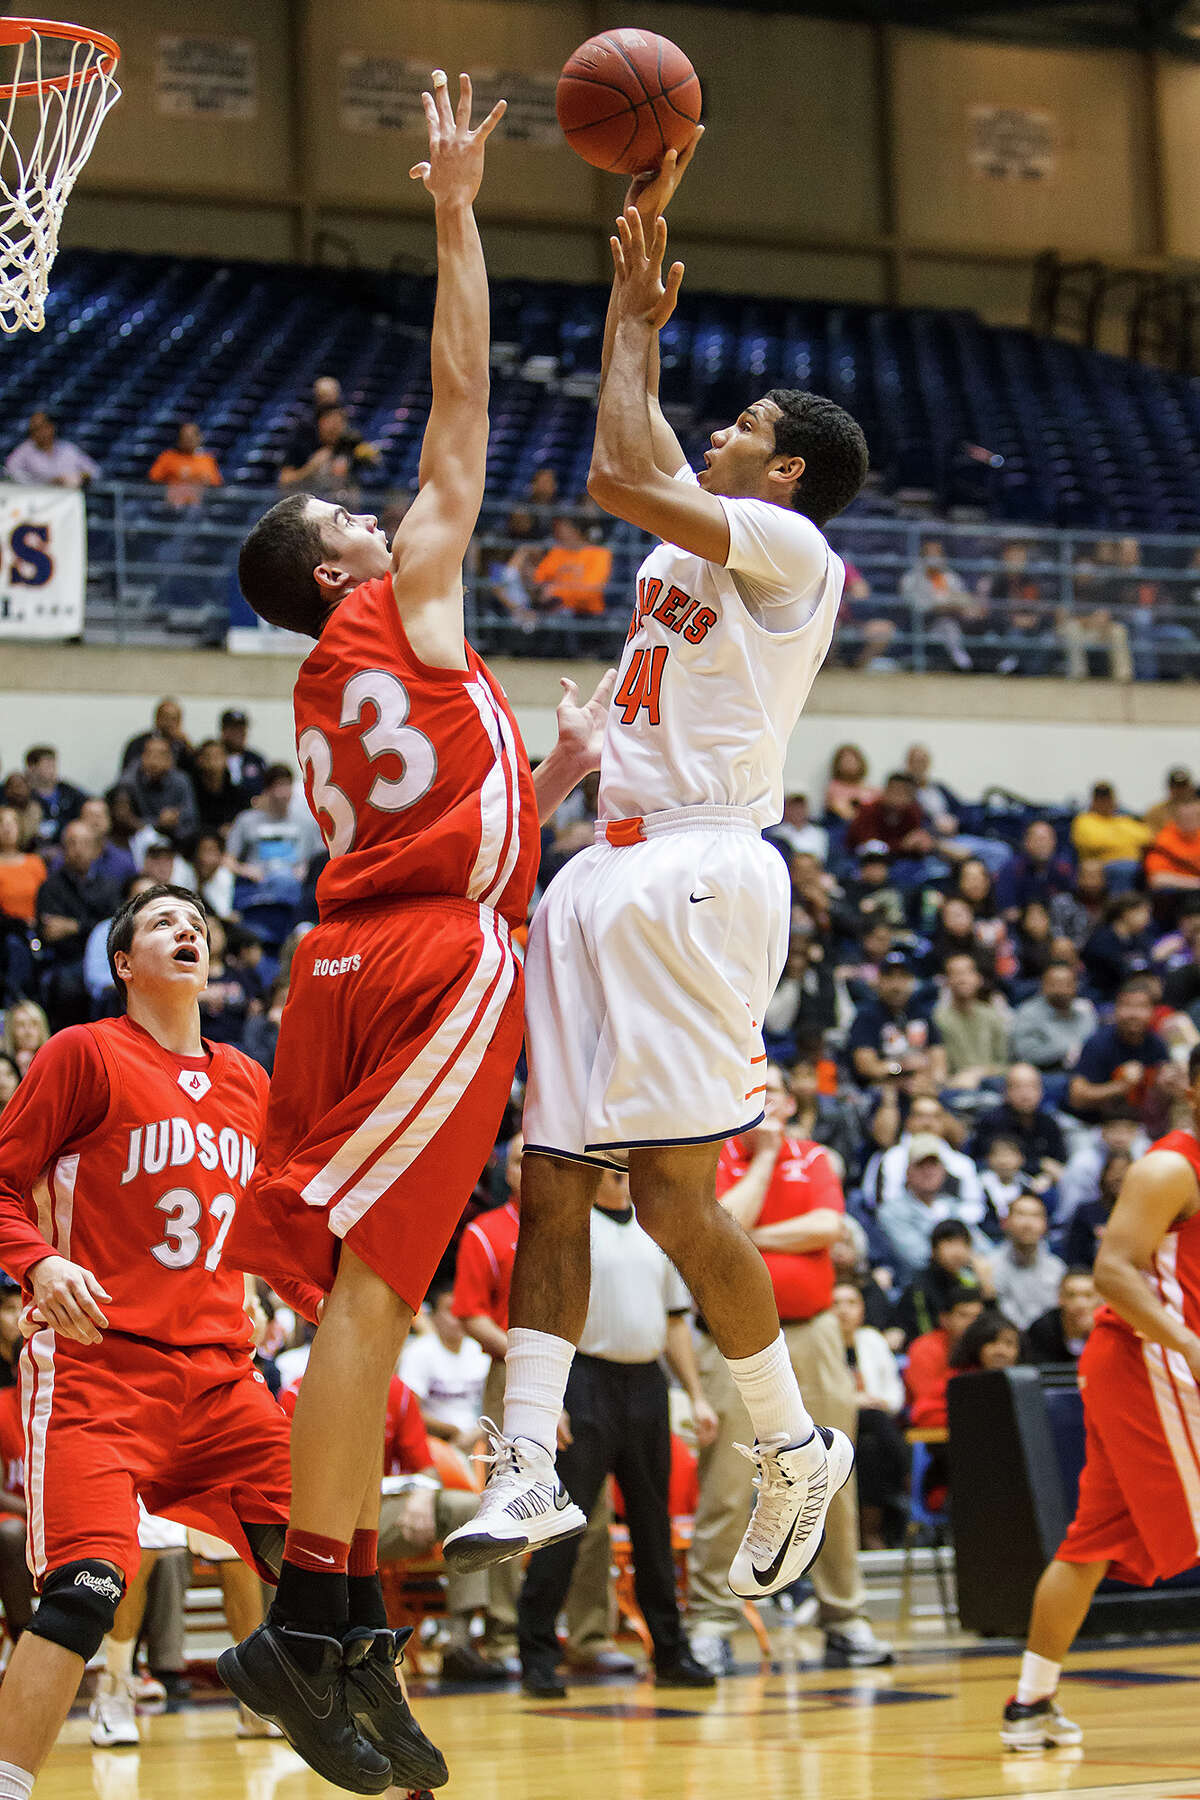 Brandeis' Jonathan Robinson (right) tries to get a shot over Judson's David Wacker during the first half of their Class 5A boys basketball third round game at the UTSA Convocation Center on Tuesday, Feb. 26, 2013. Brandeis won the game 60-53.